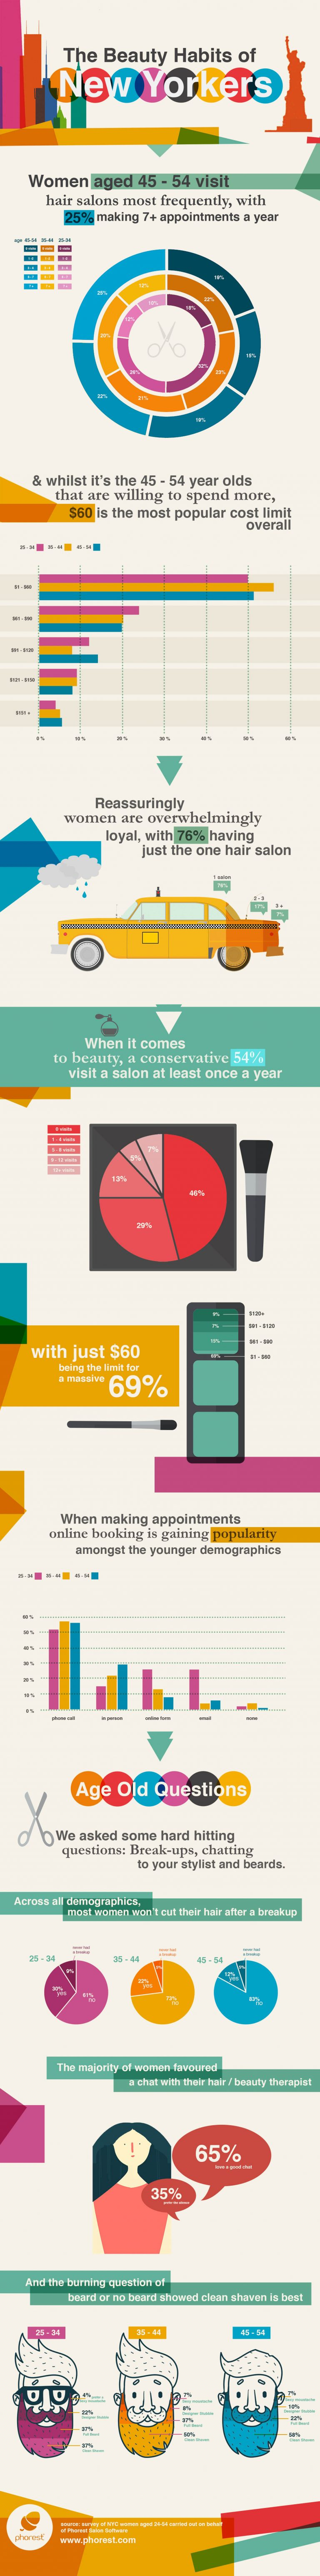 New York Salon and Spa Spending Habits